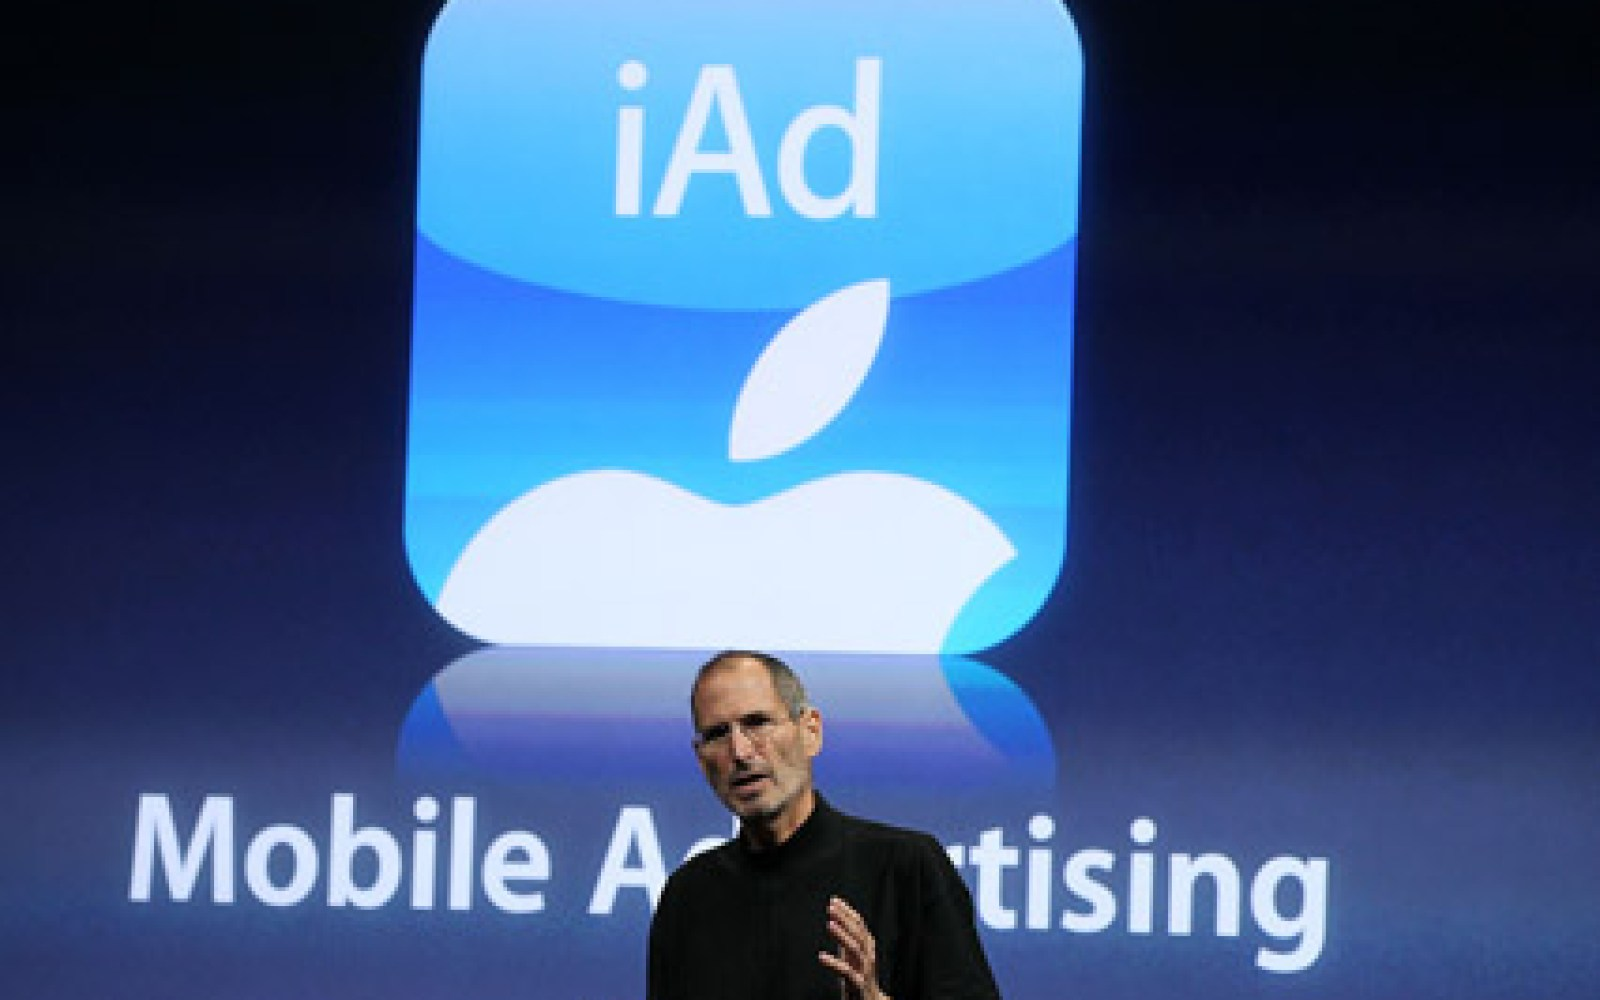 Report says Apple planning to launch new ad exchange service